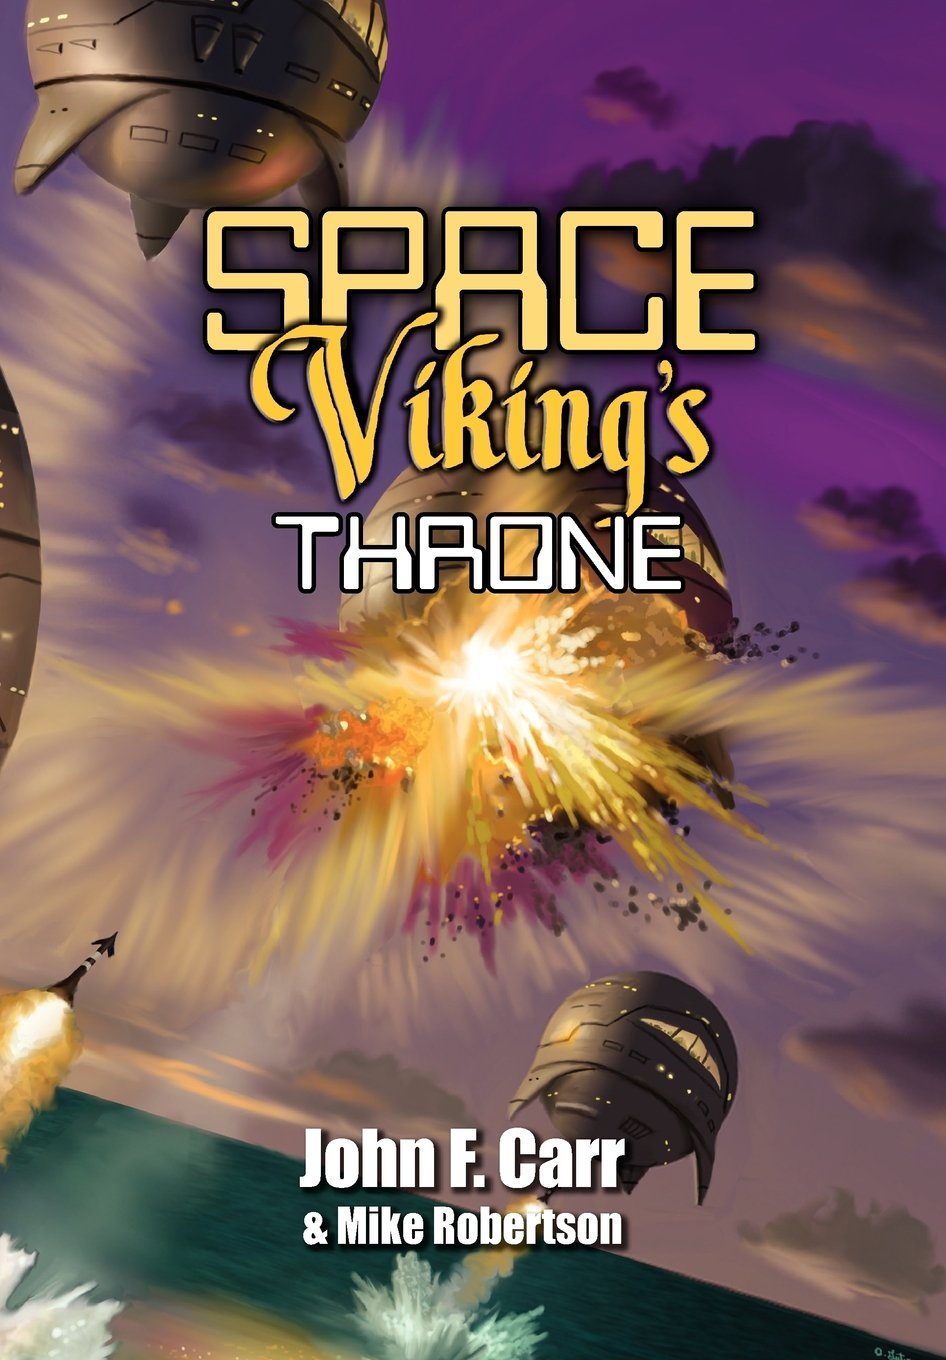 Image - Space Viking's Throne by Alan Gutierrez